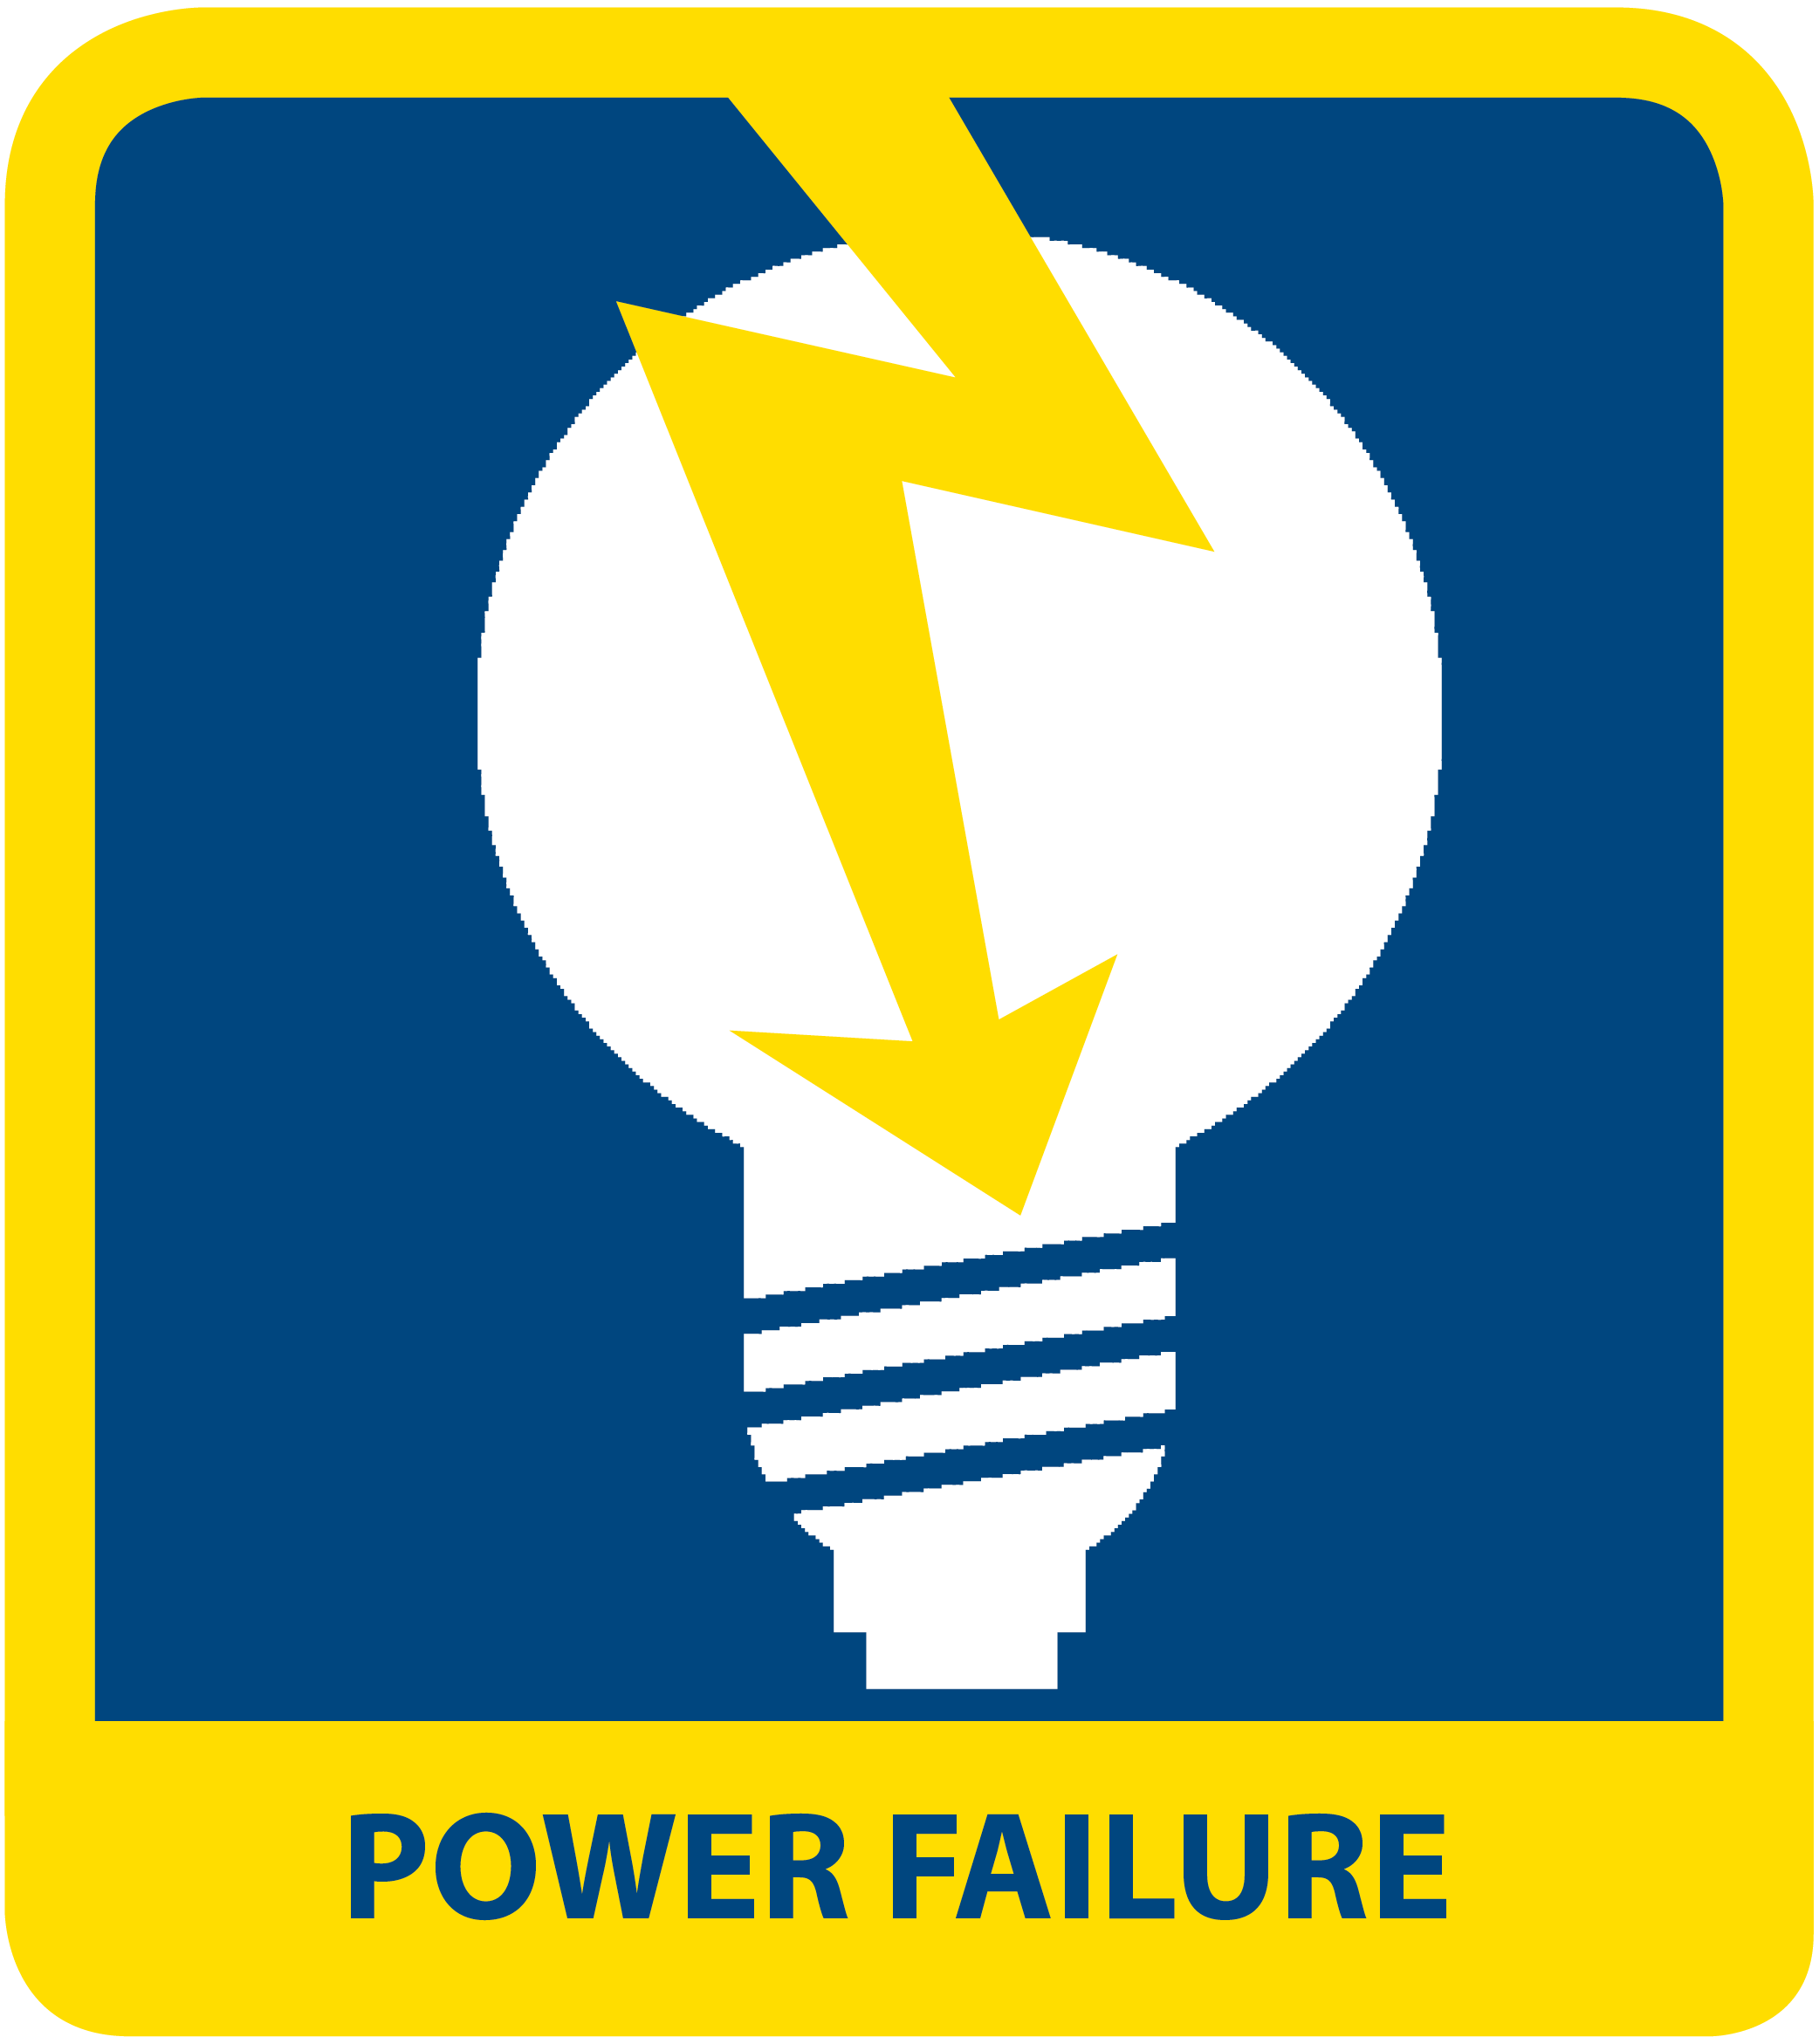 Power Out Png - Confluence Mobile - SPU Wiki